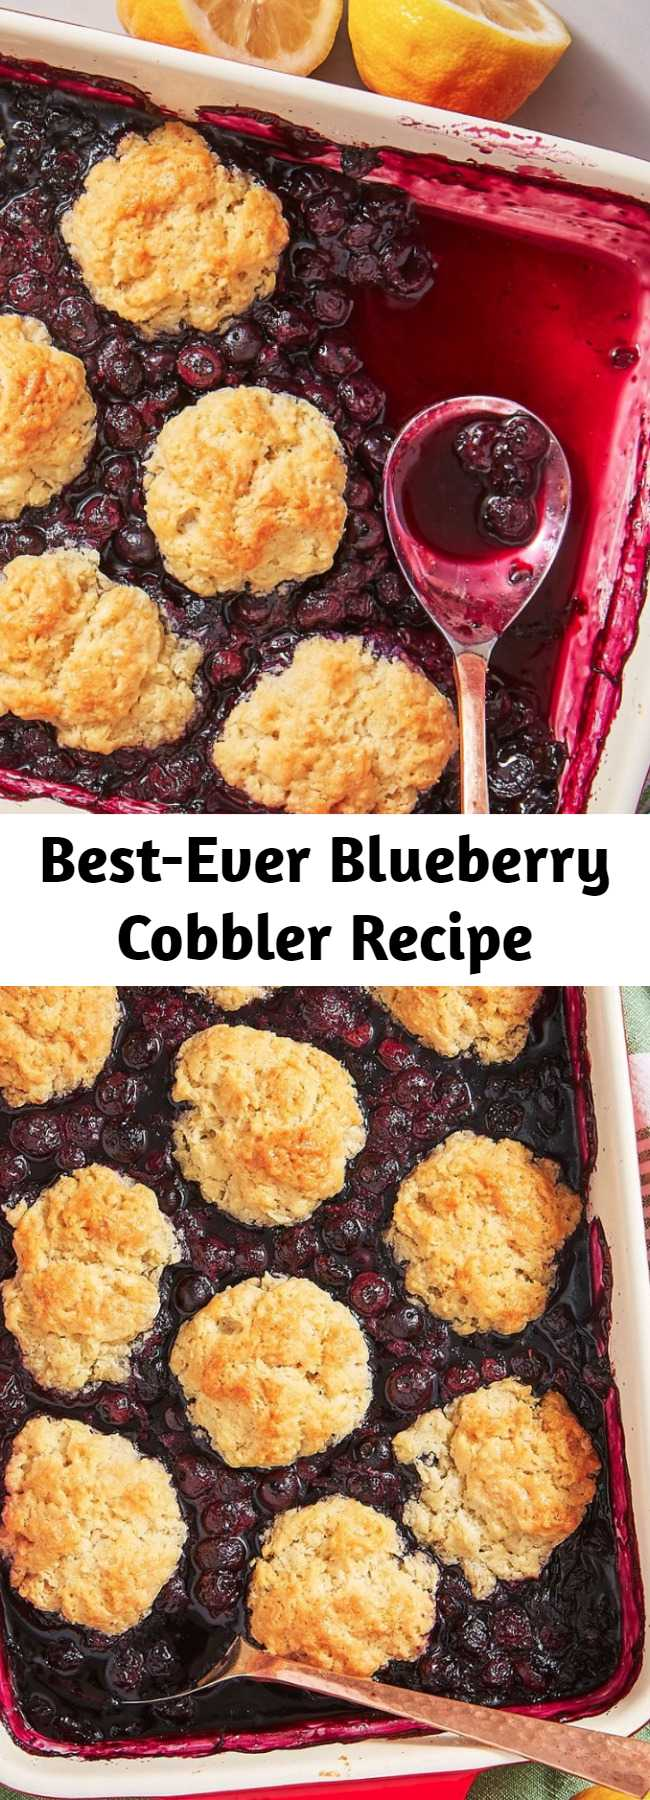 Best-Ever Blueberry Cobbler Recipe - This easy blueberry cobbler recipe is all about the biscuit topping! Not too sweet, super-tender, with a crisp golden top. If we could, we'd eat them all first.